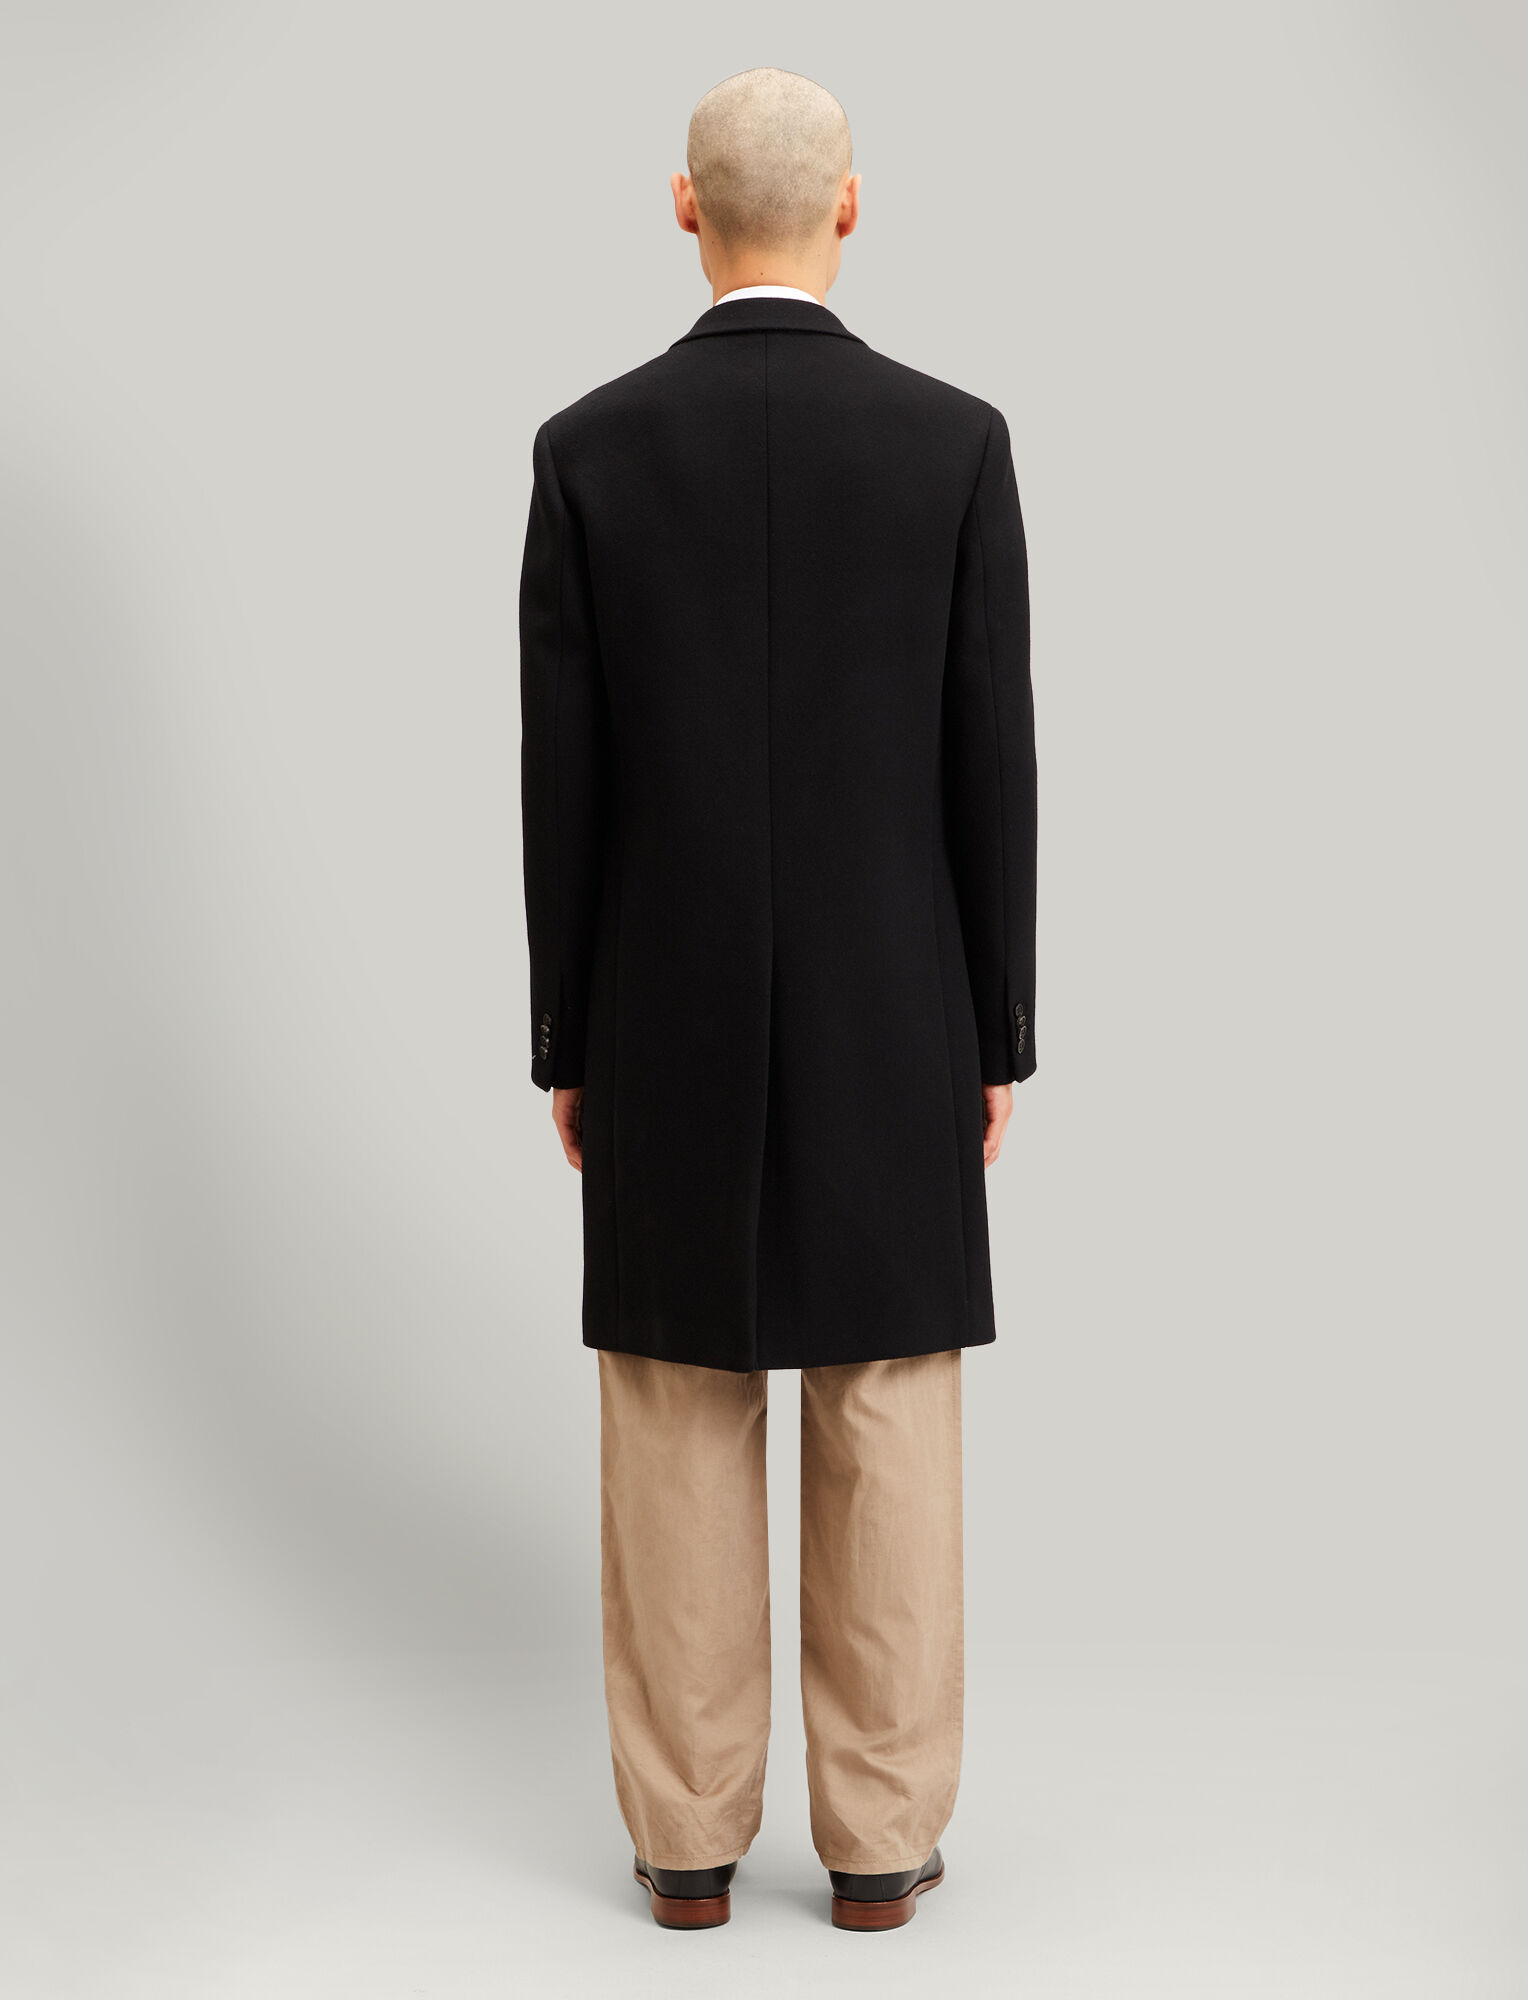 Joseph, London Double Wool Coat, in BLACK